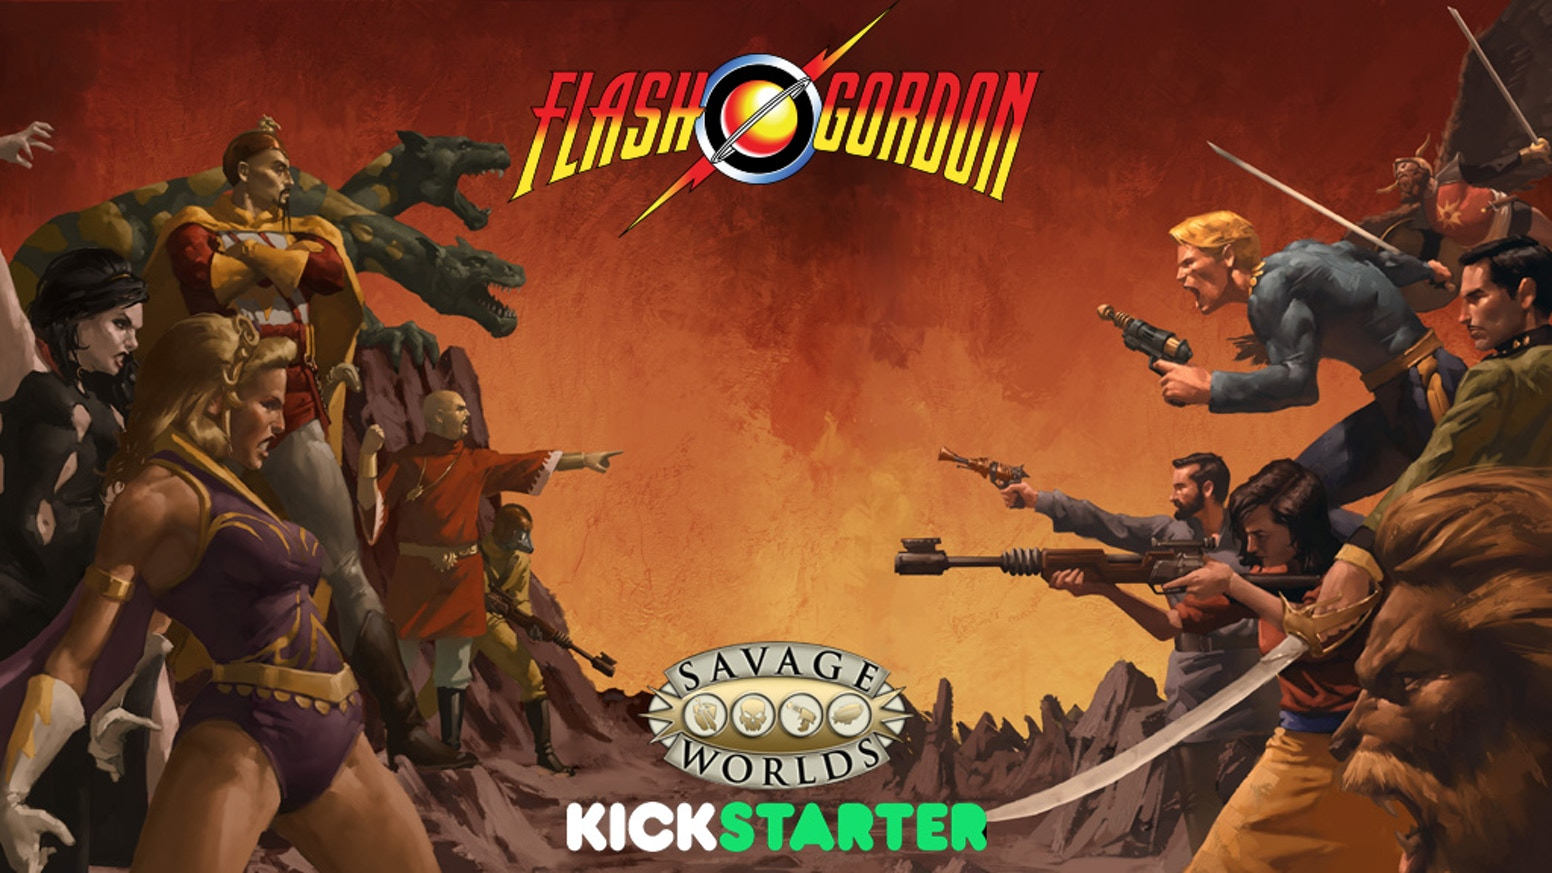 Pulp action at its finest! Use the Fast! Furious! Fun! Savage Worlds game system in the popular cinematic world of Flash Gordon™!